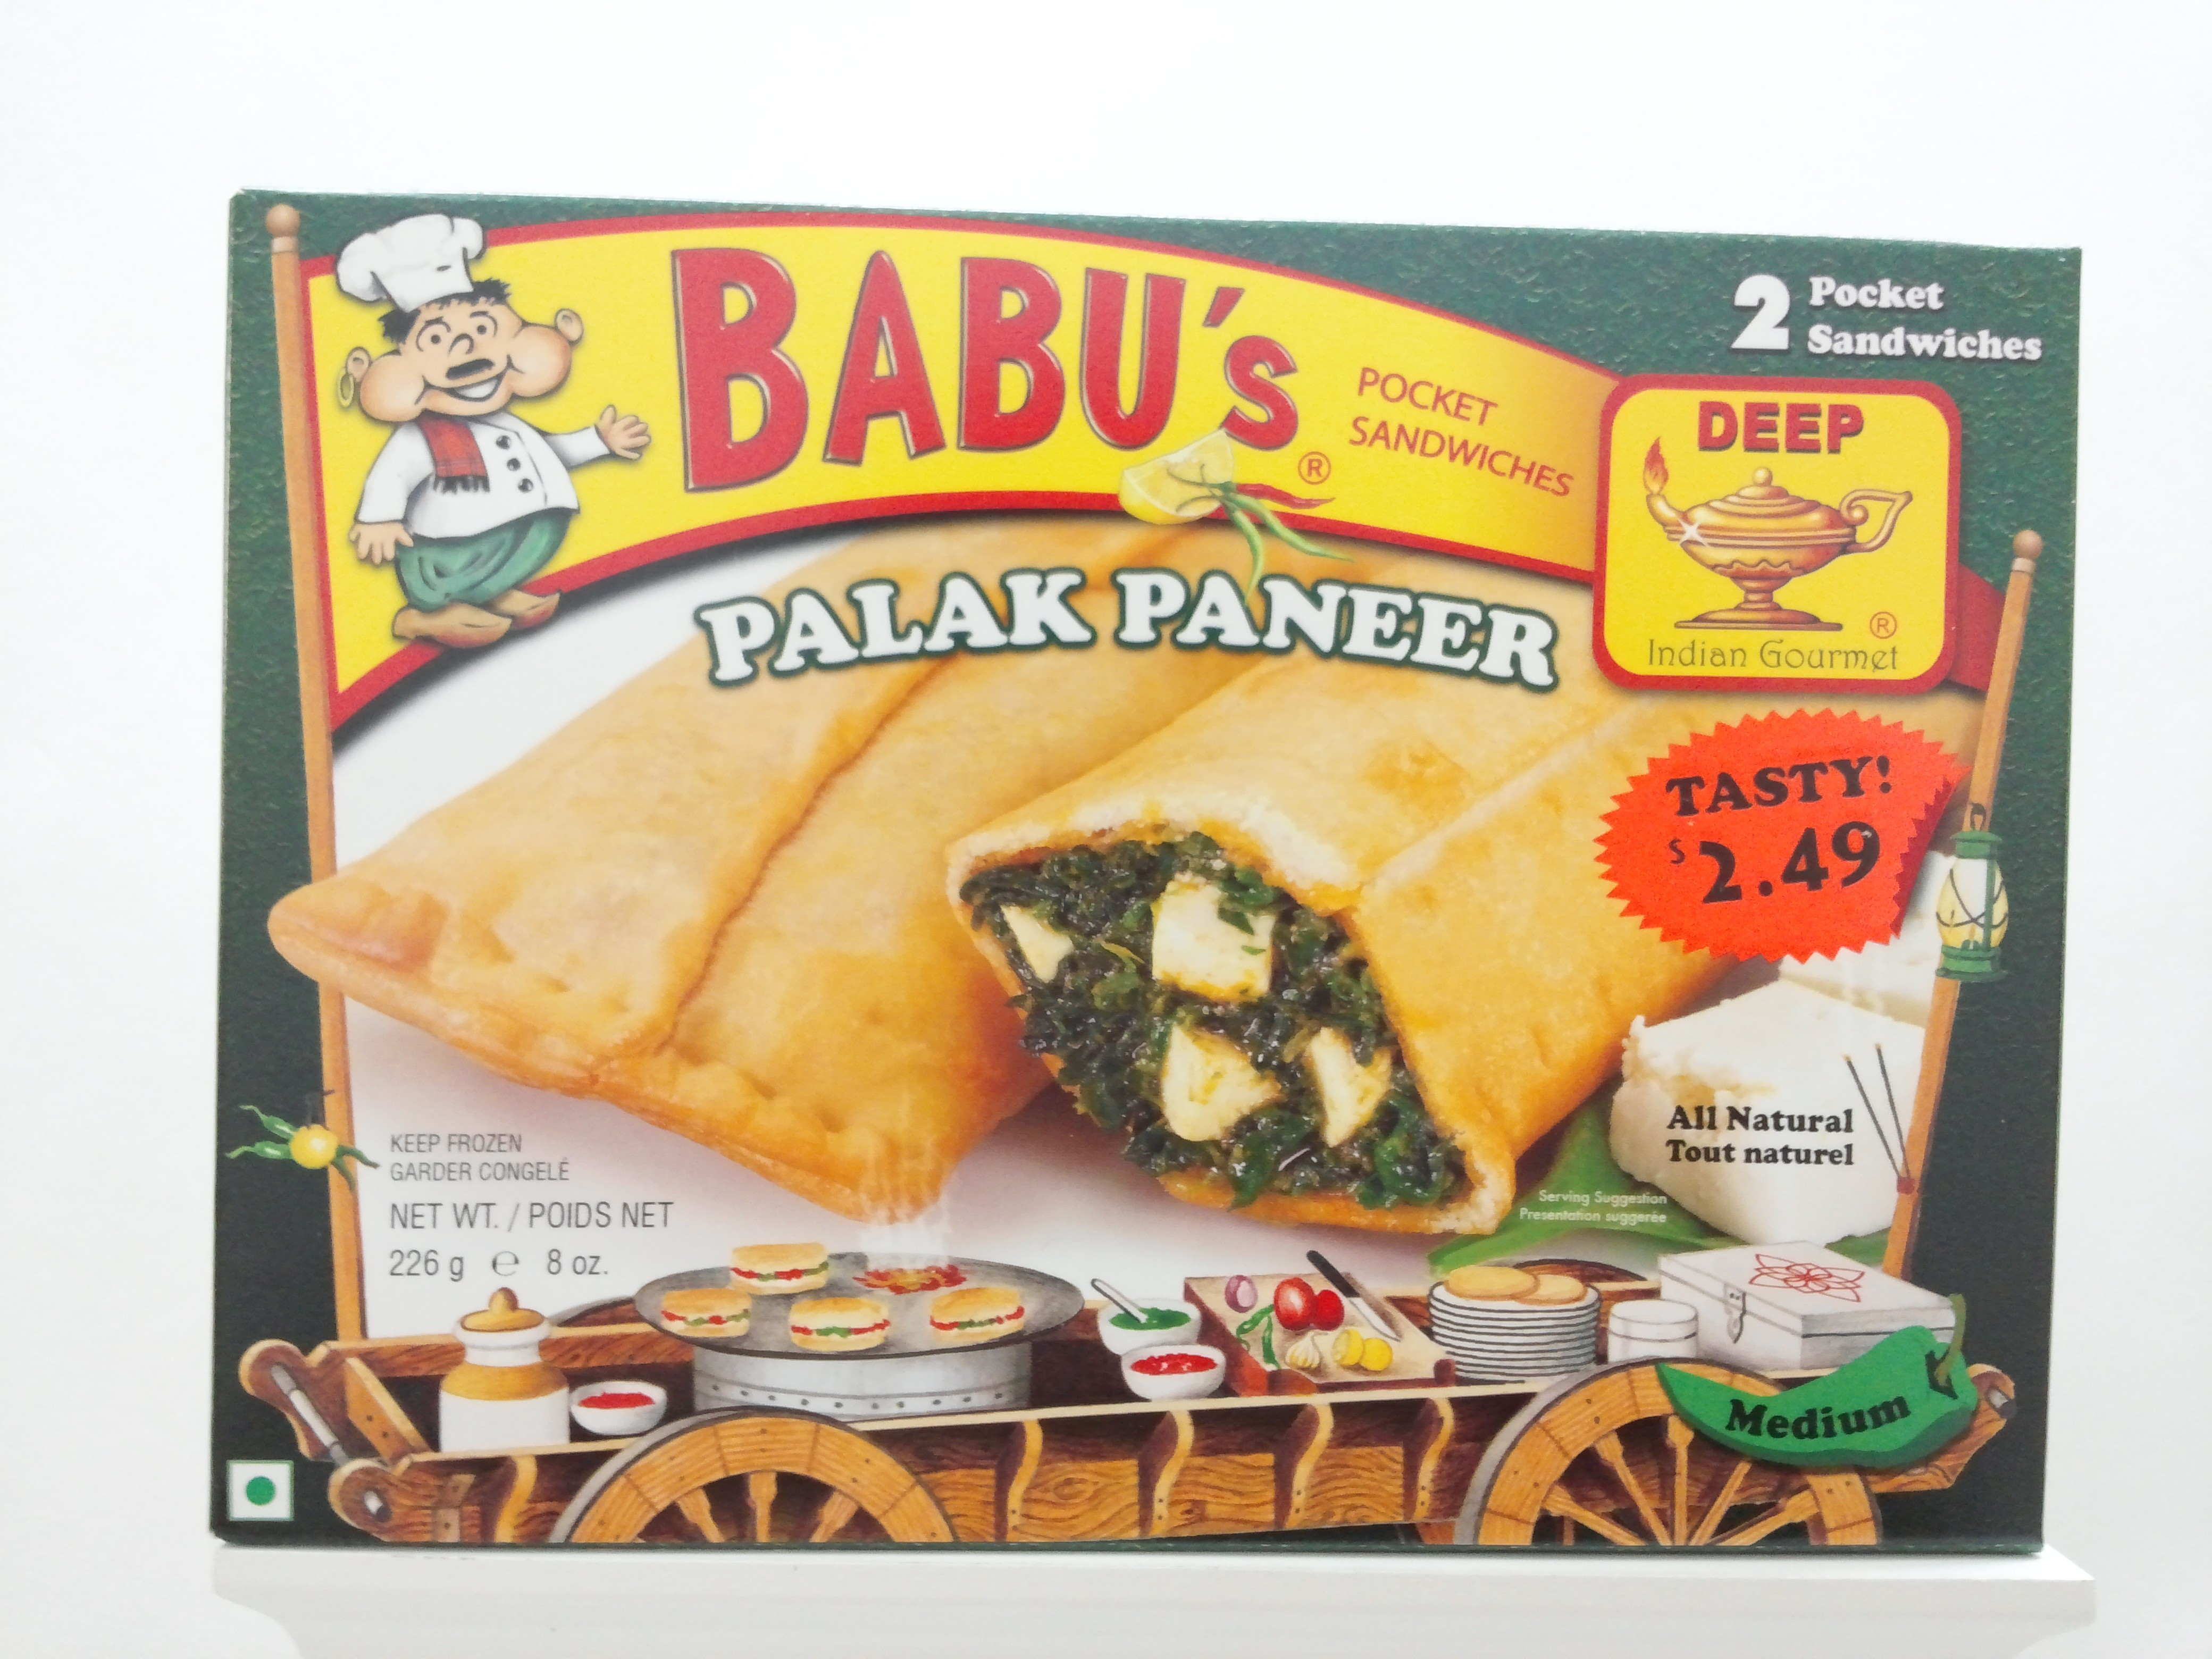 Babu's Palak Paneer Pocket Sandwich 8 oz